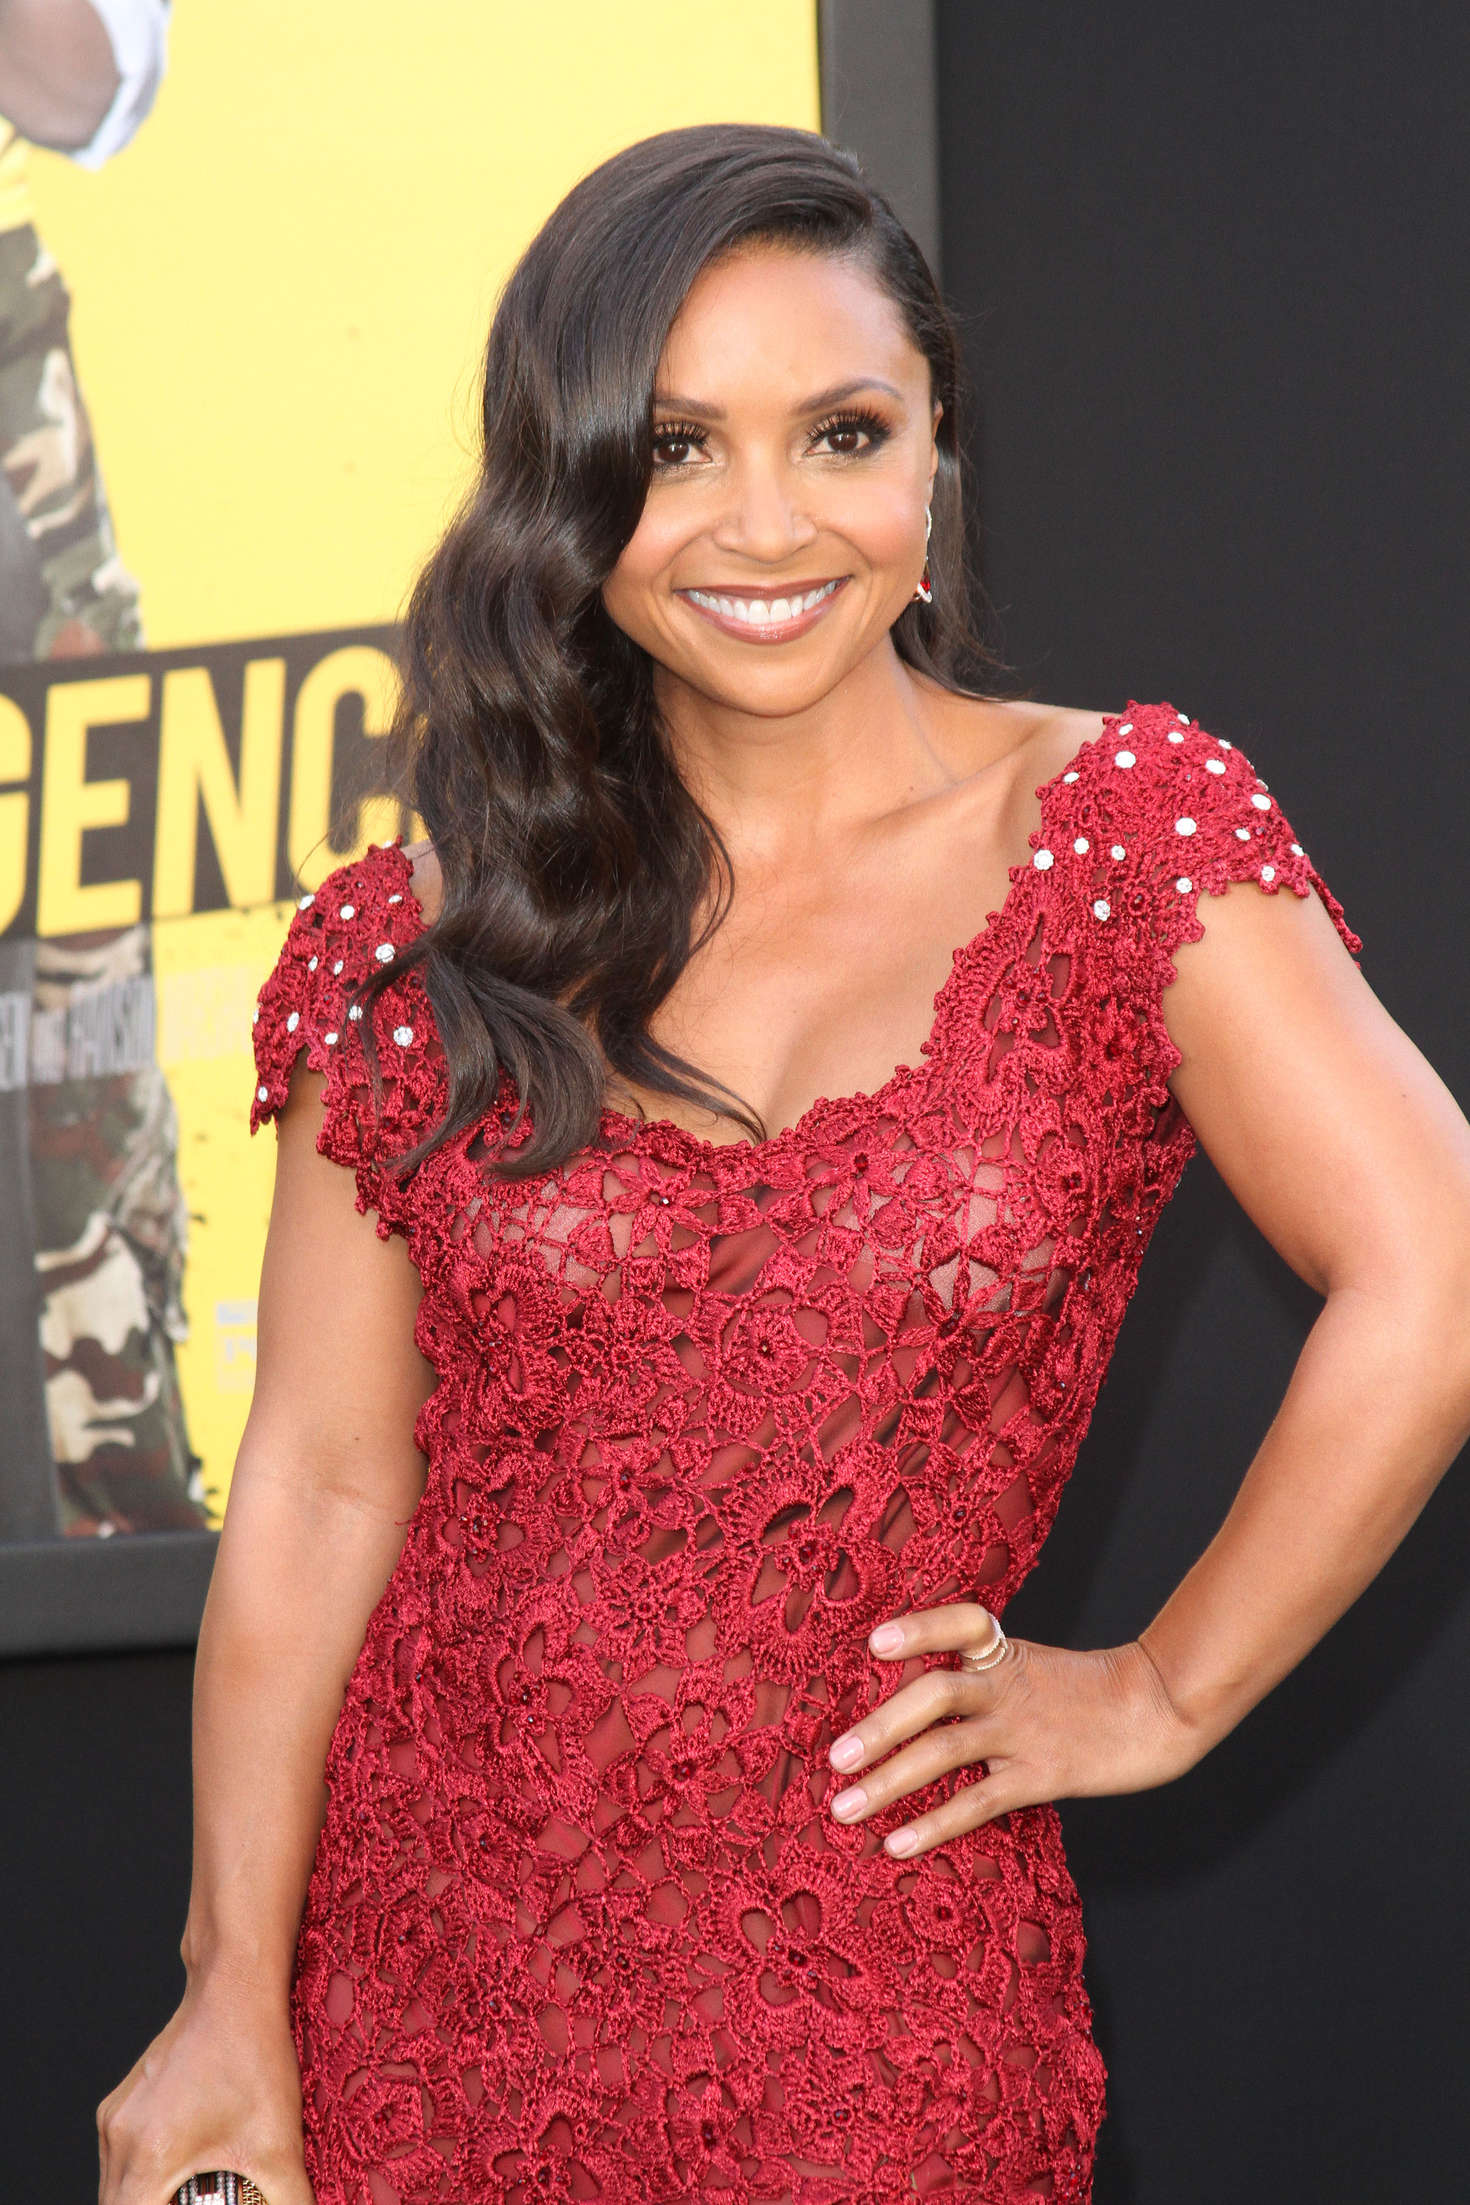 Not see danielle nicolet nude are certainly